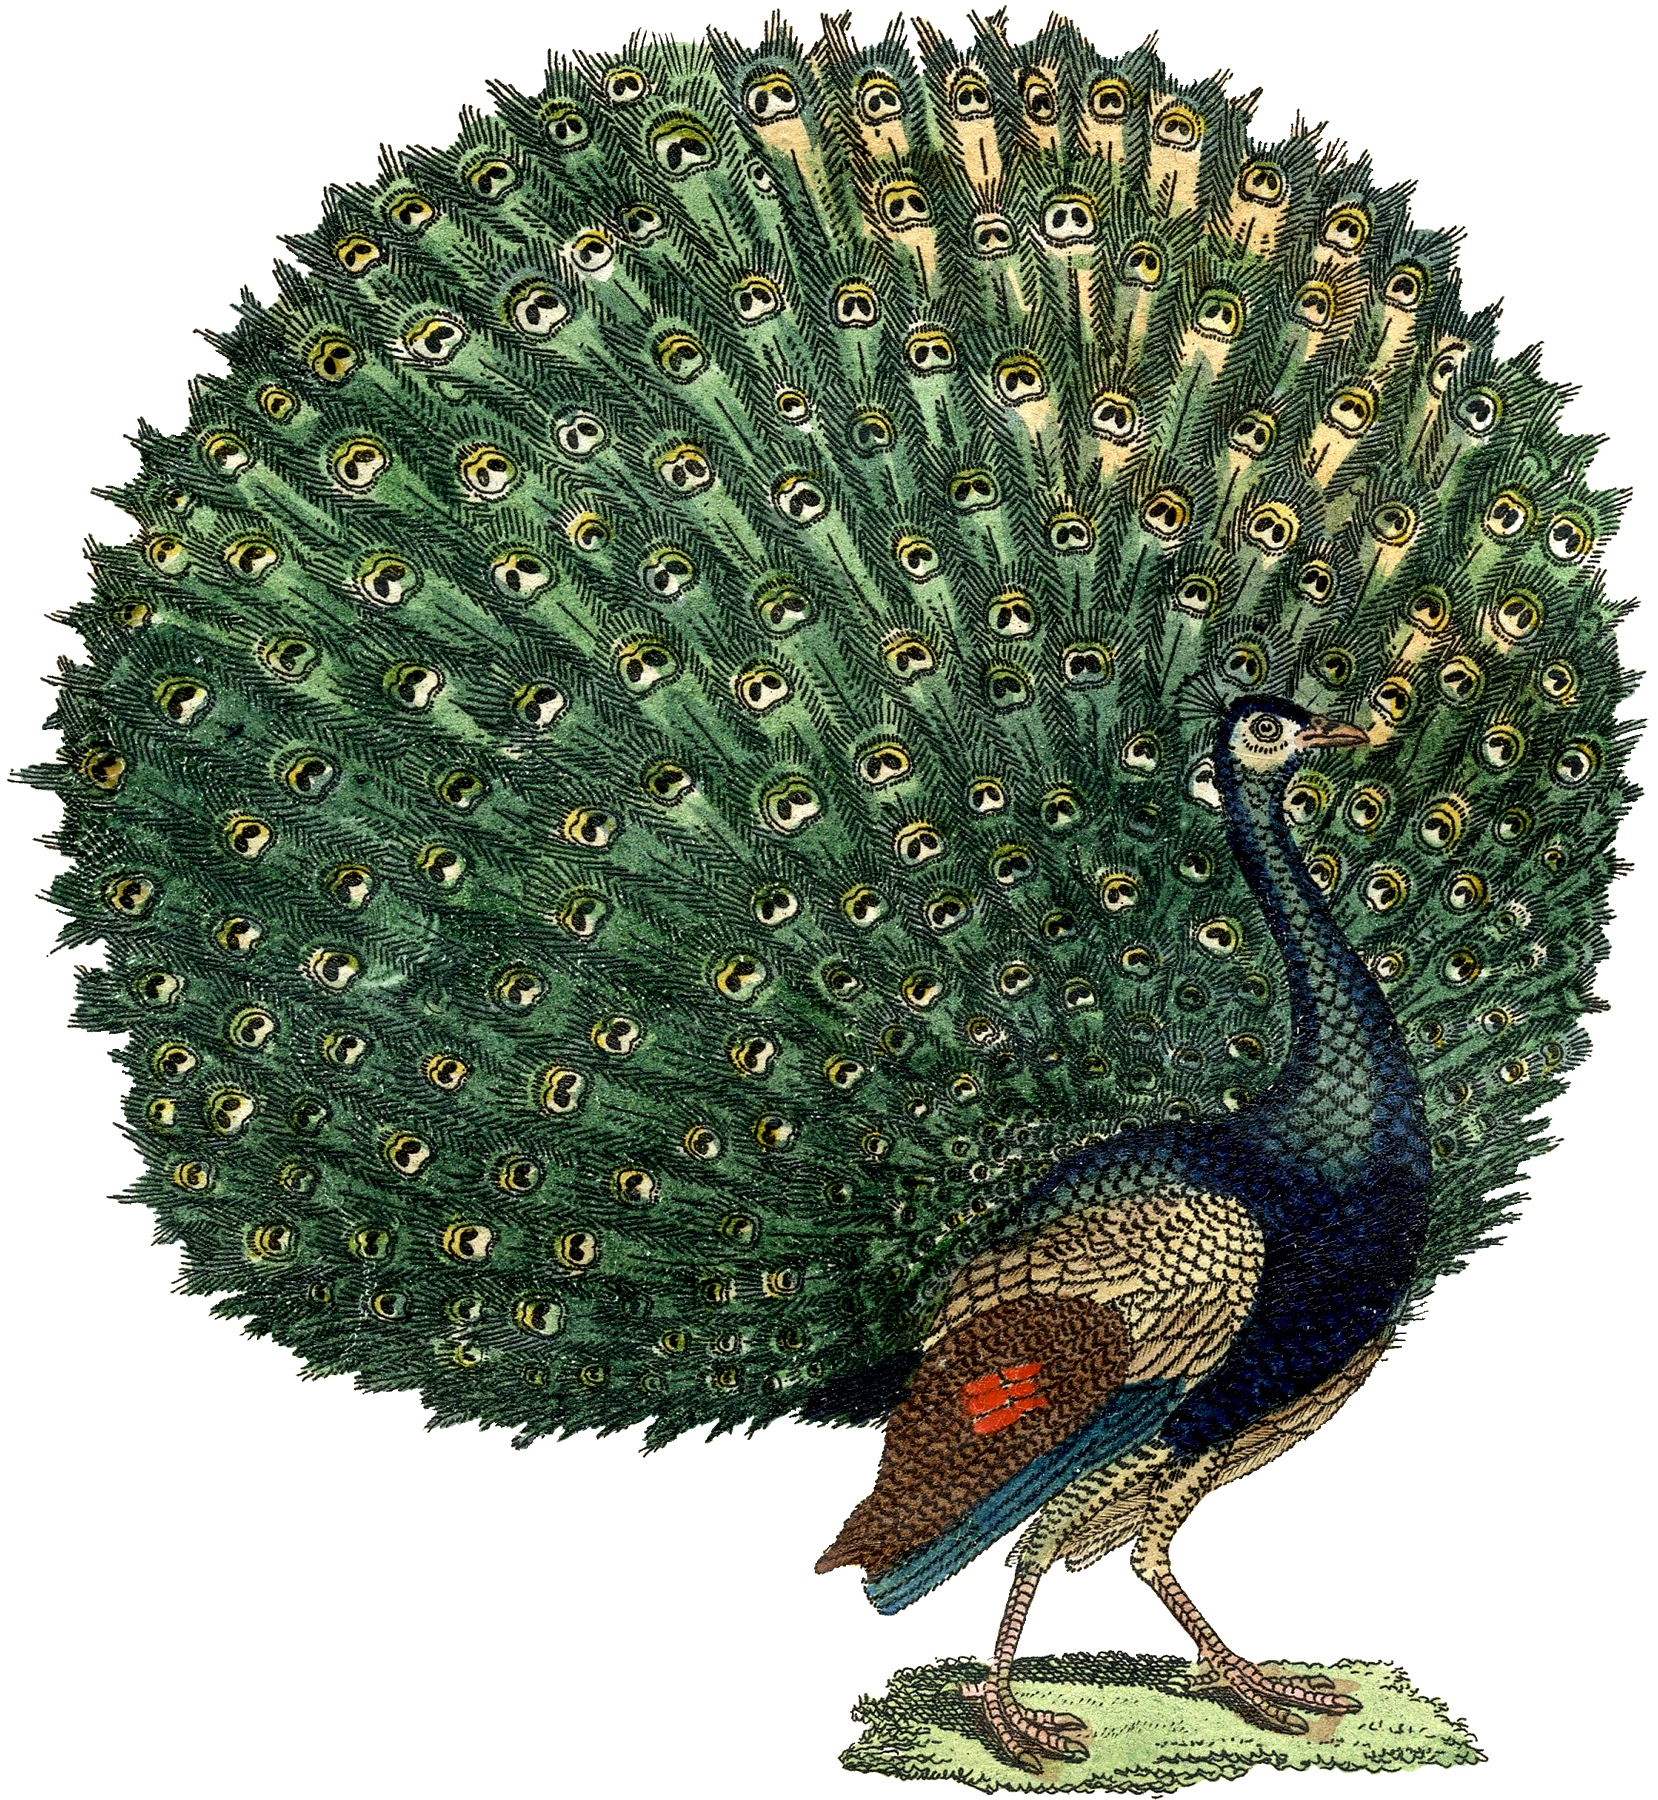 The Graphics Fairy: Fabulous Free Public Domain Peacock Image!